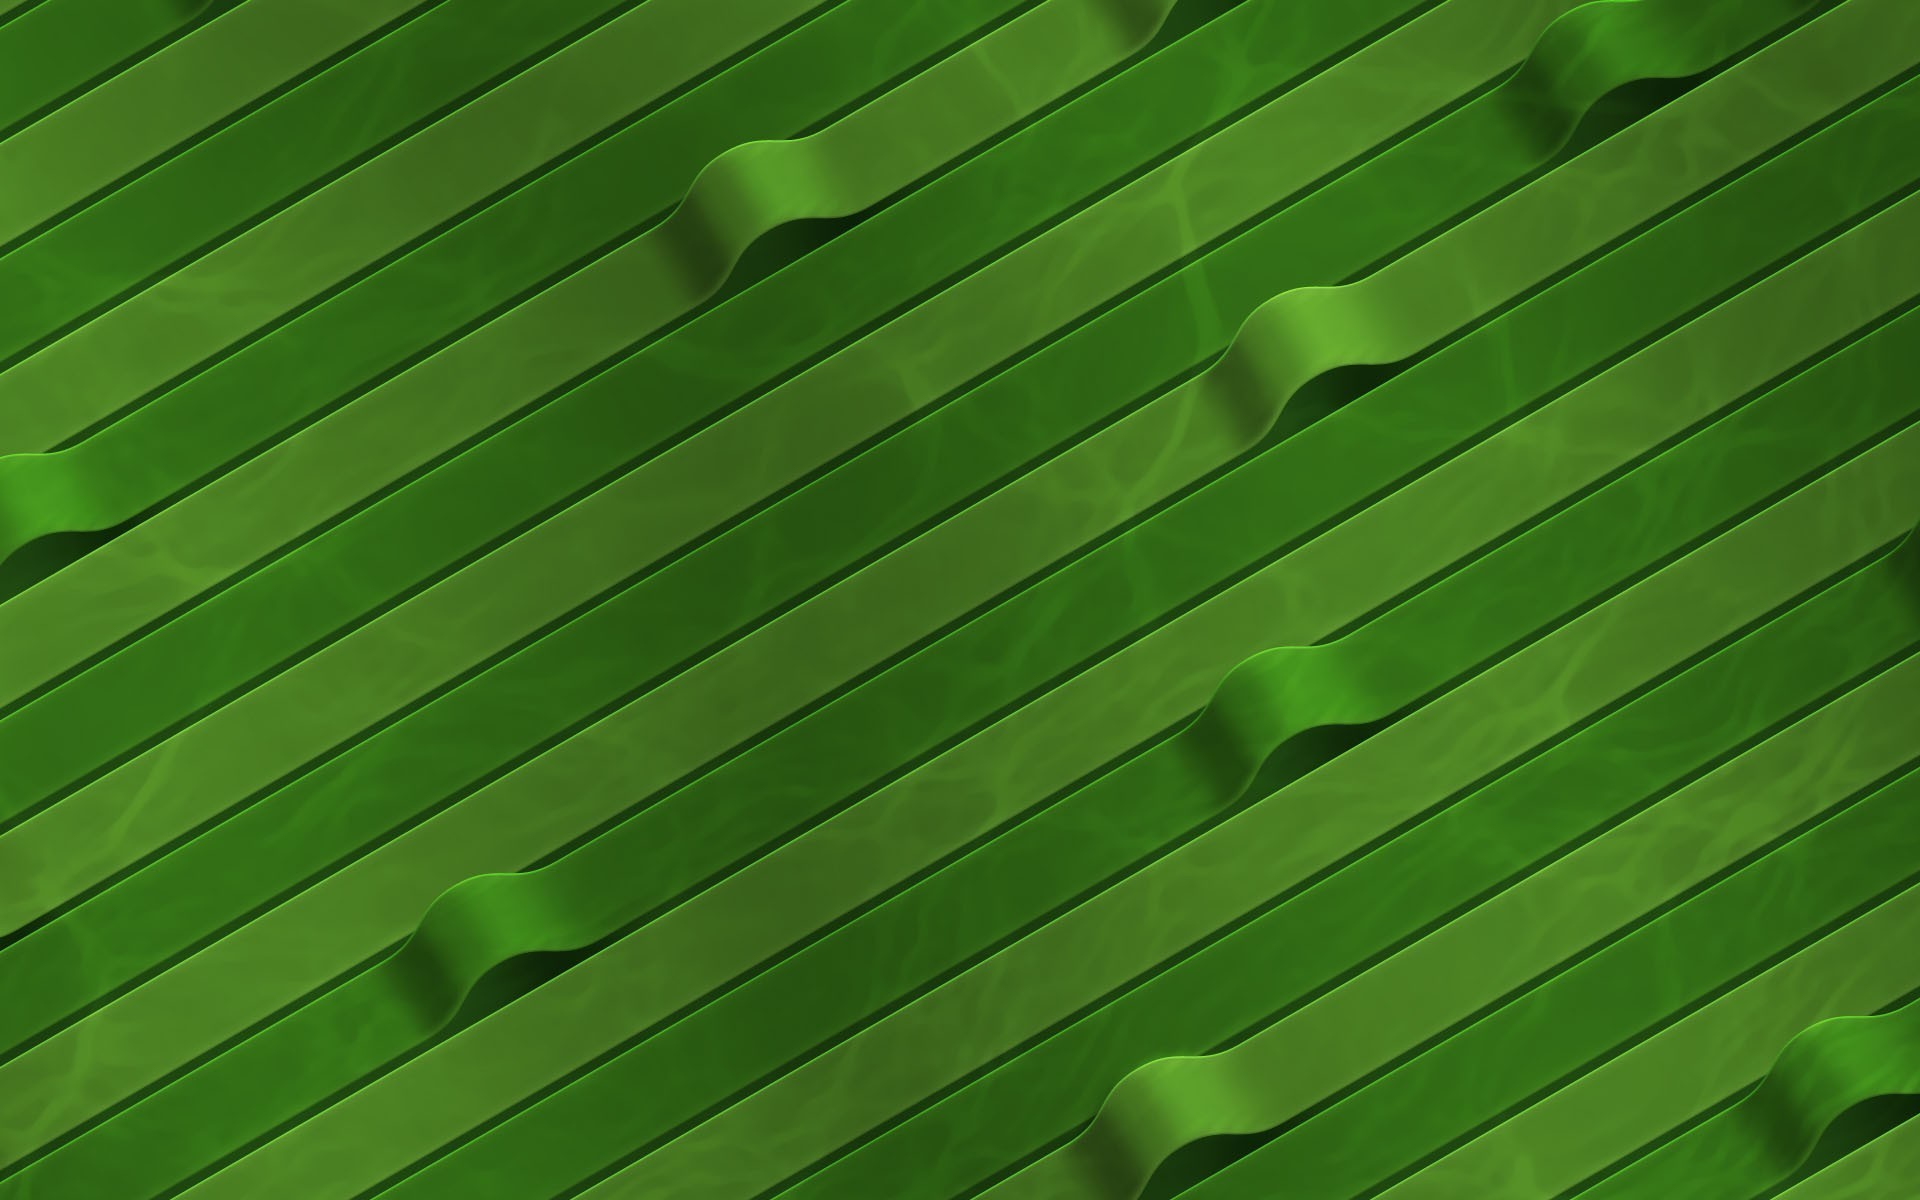 daigonal floor green lines texture, lines texture, backgrounds, background for website